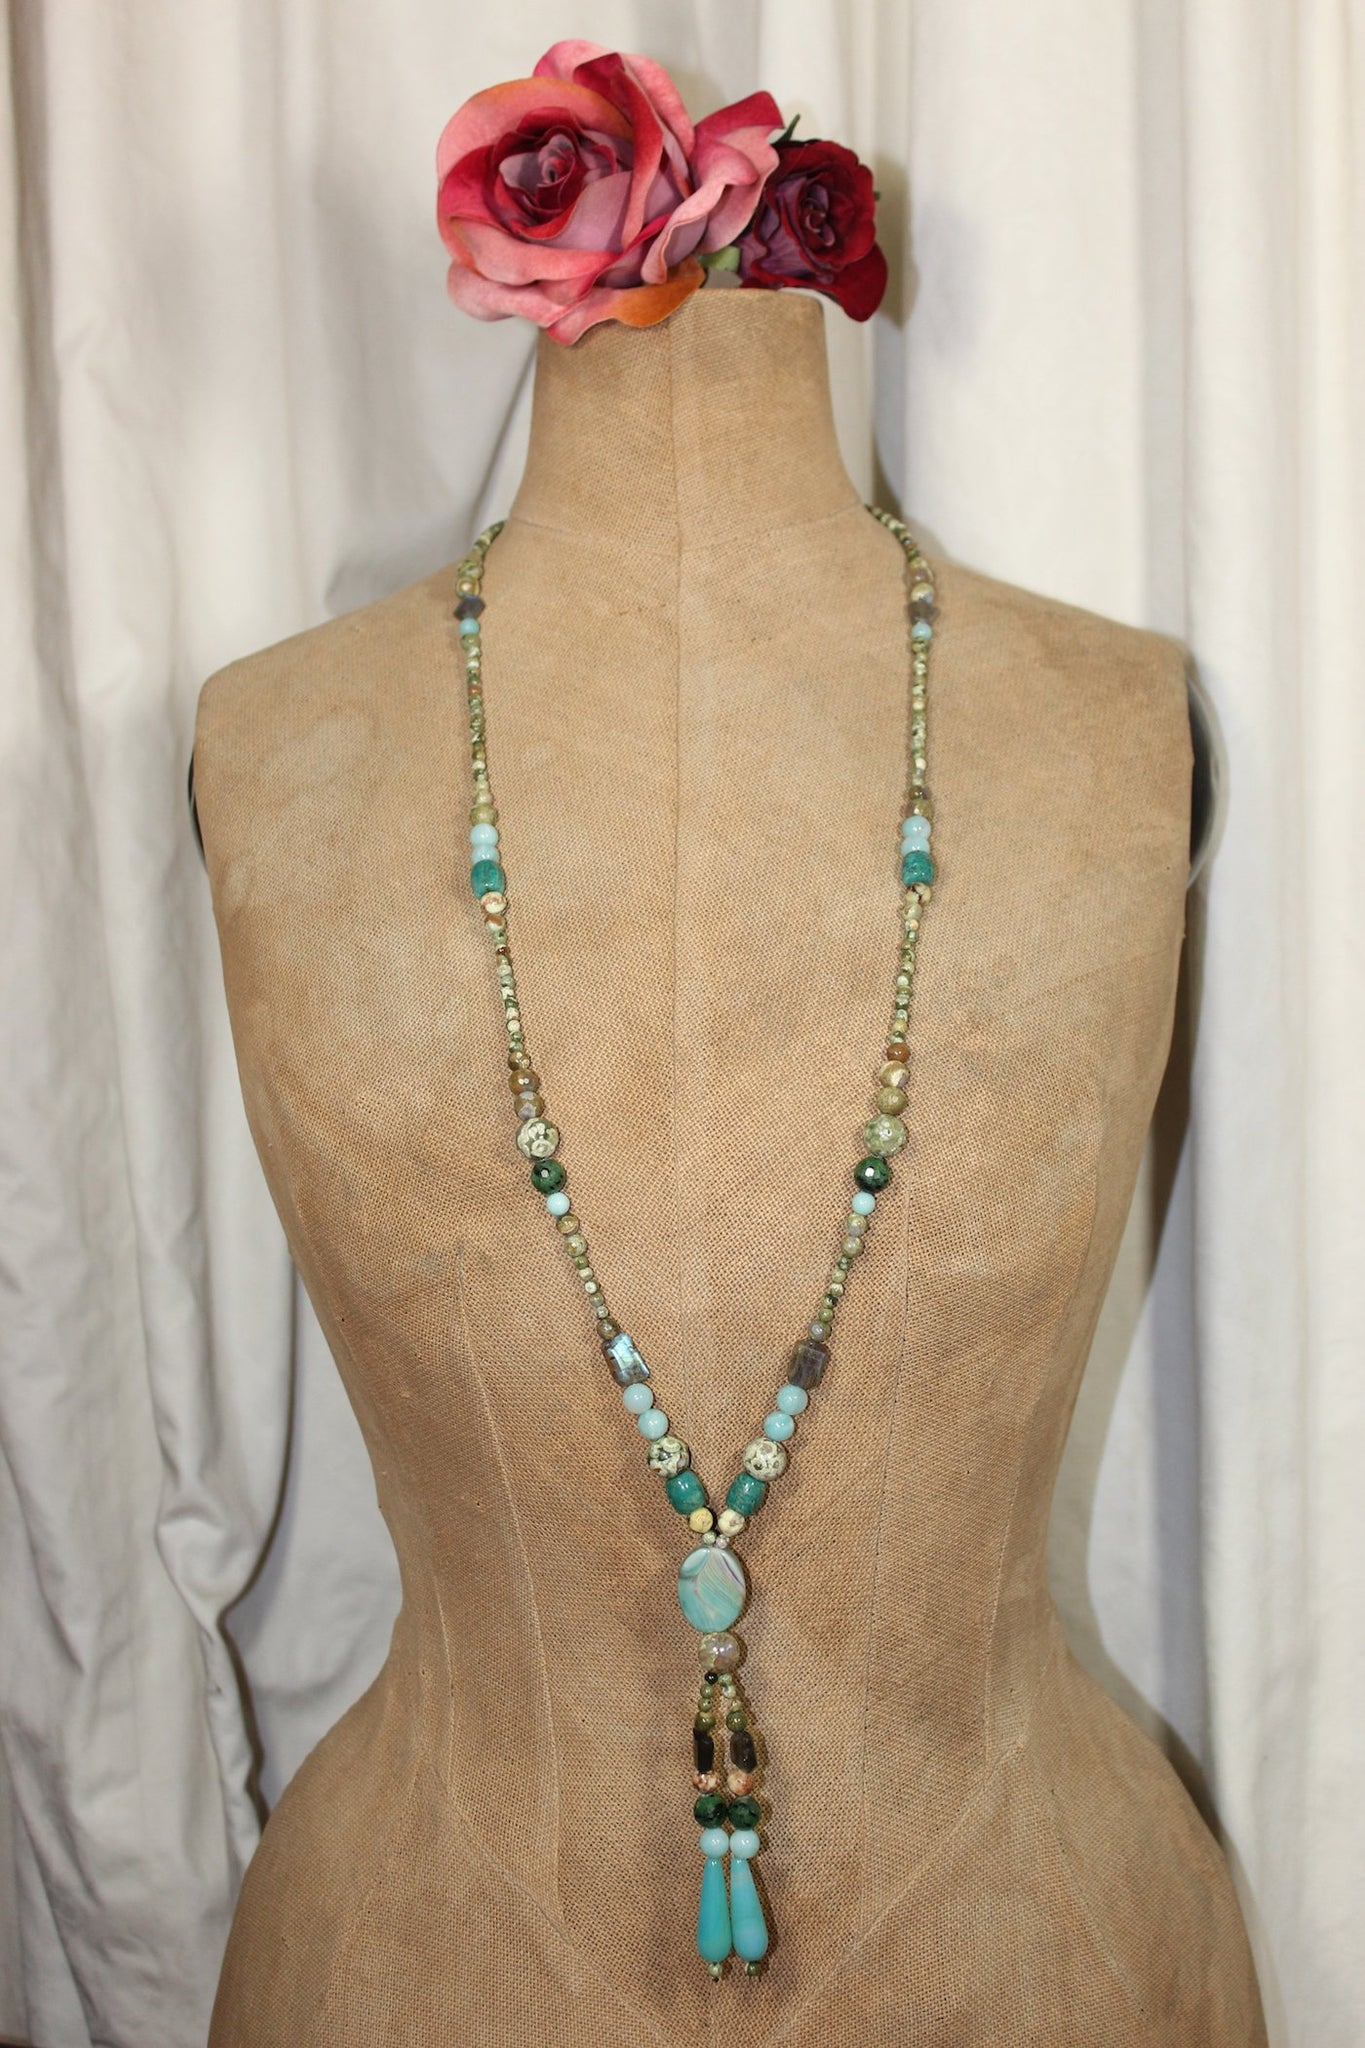 Boho-Necklace - St Barth